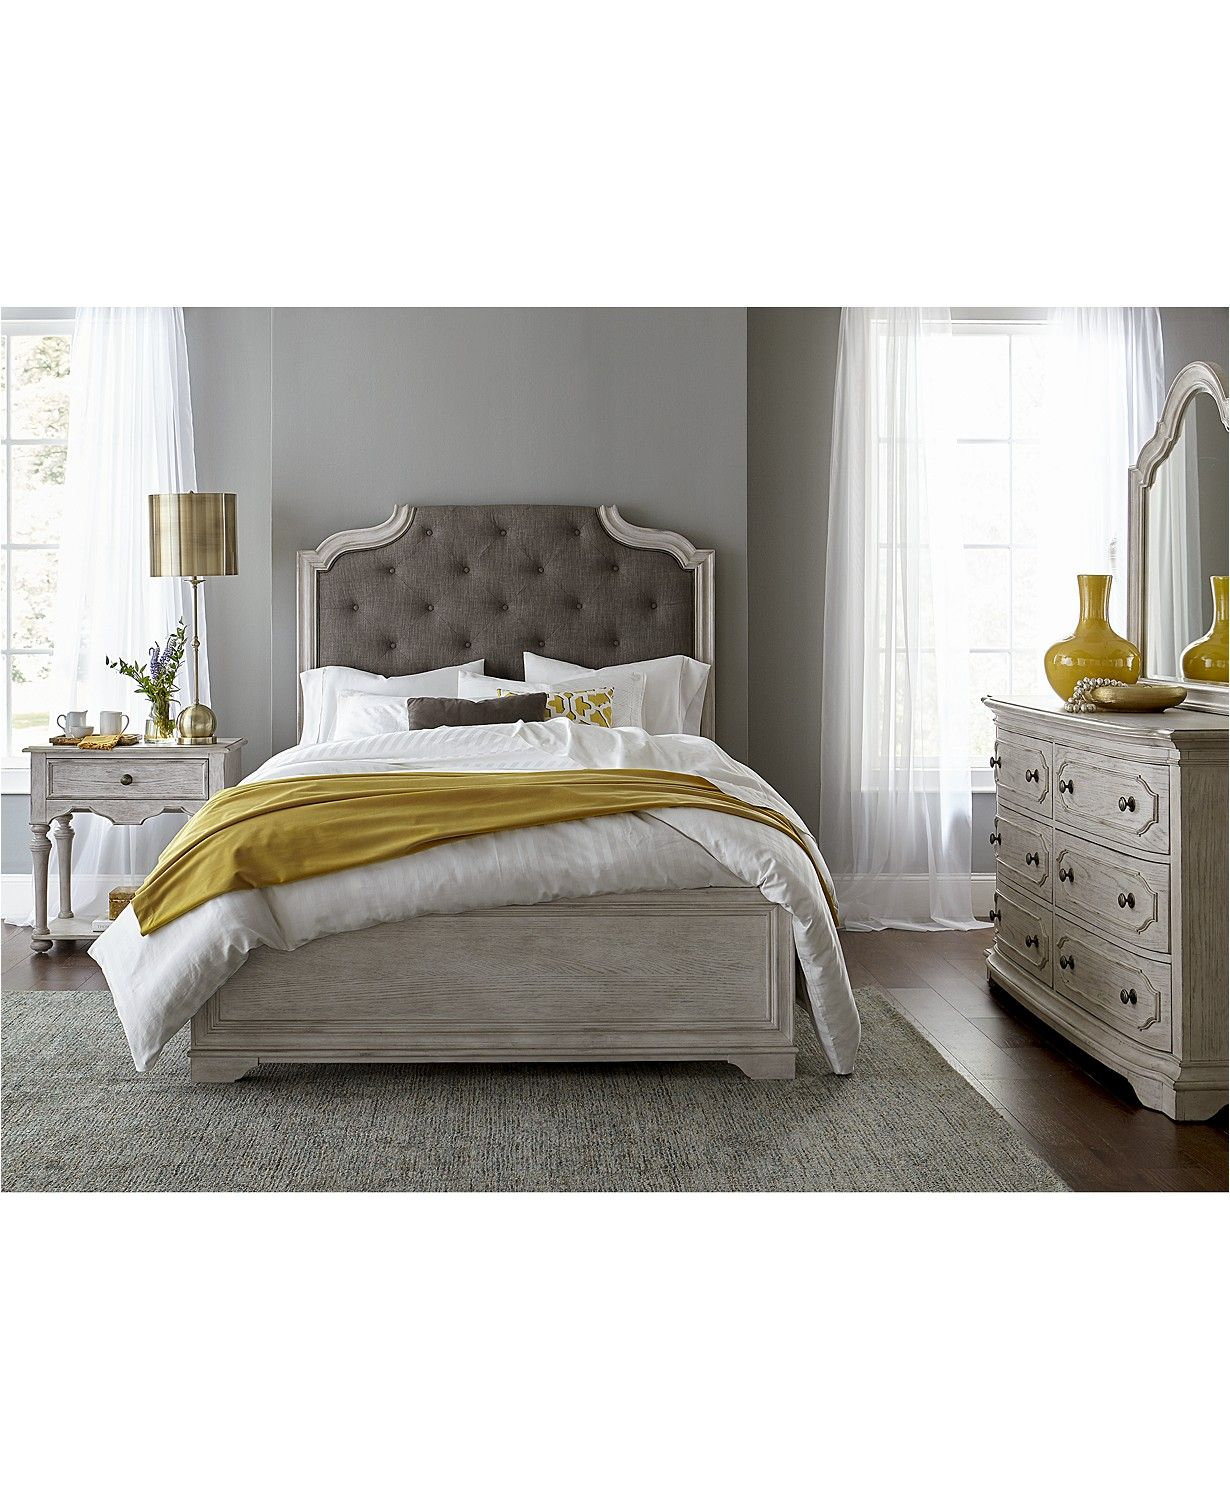 Furniture Closeout! Hadley California King Bed, Created for Macy's